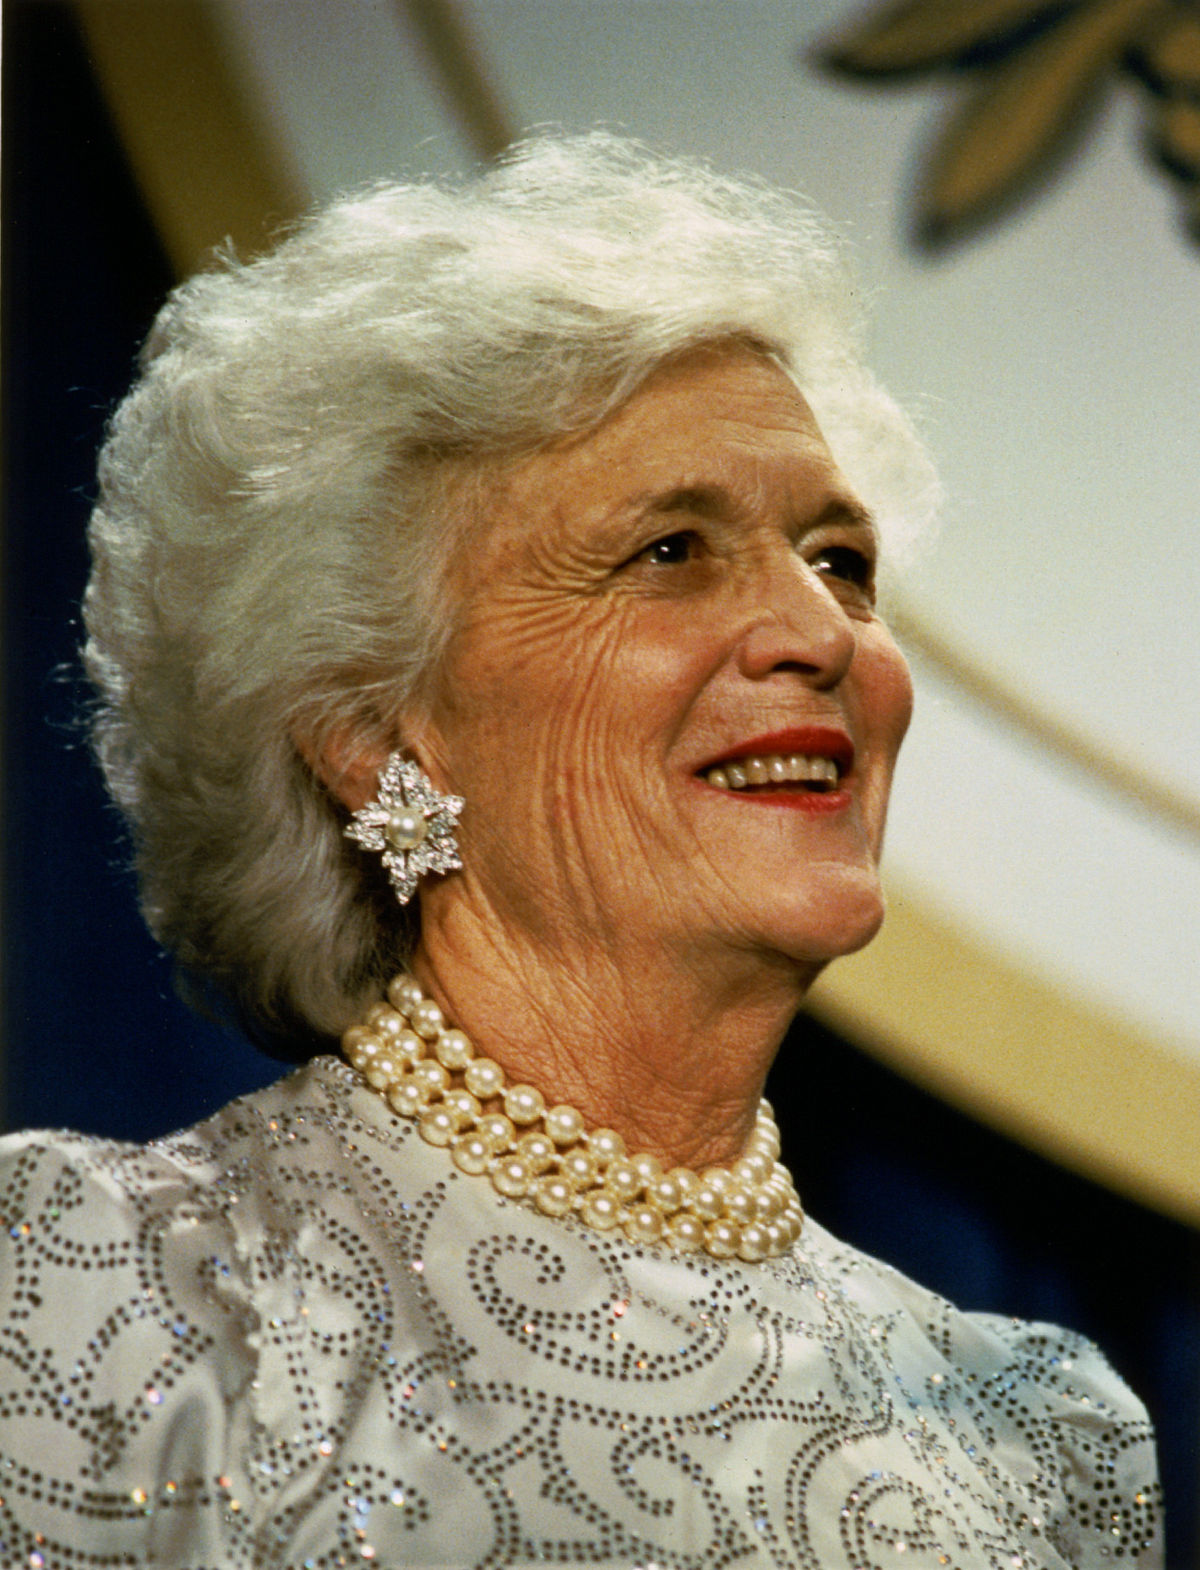 Paying Respect to Former First Lady Barbara Bush- R.I.P